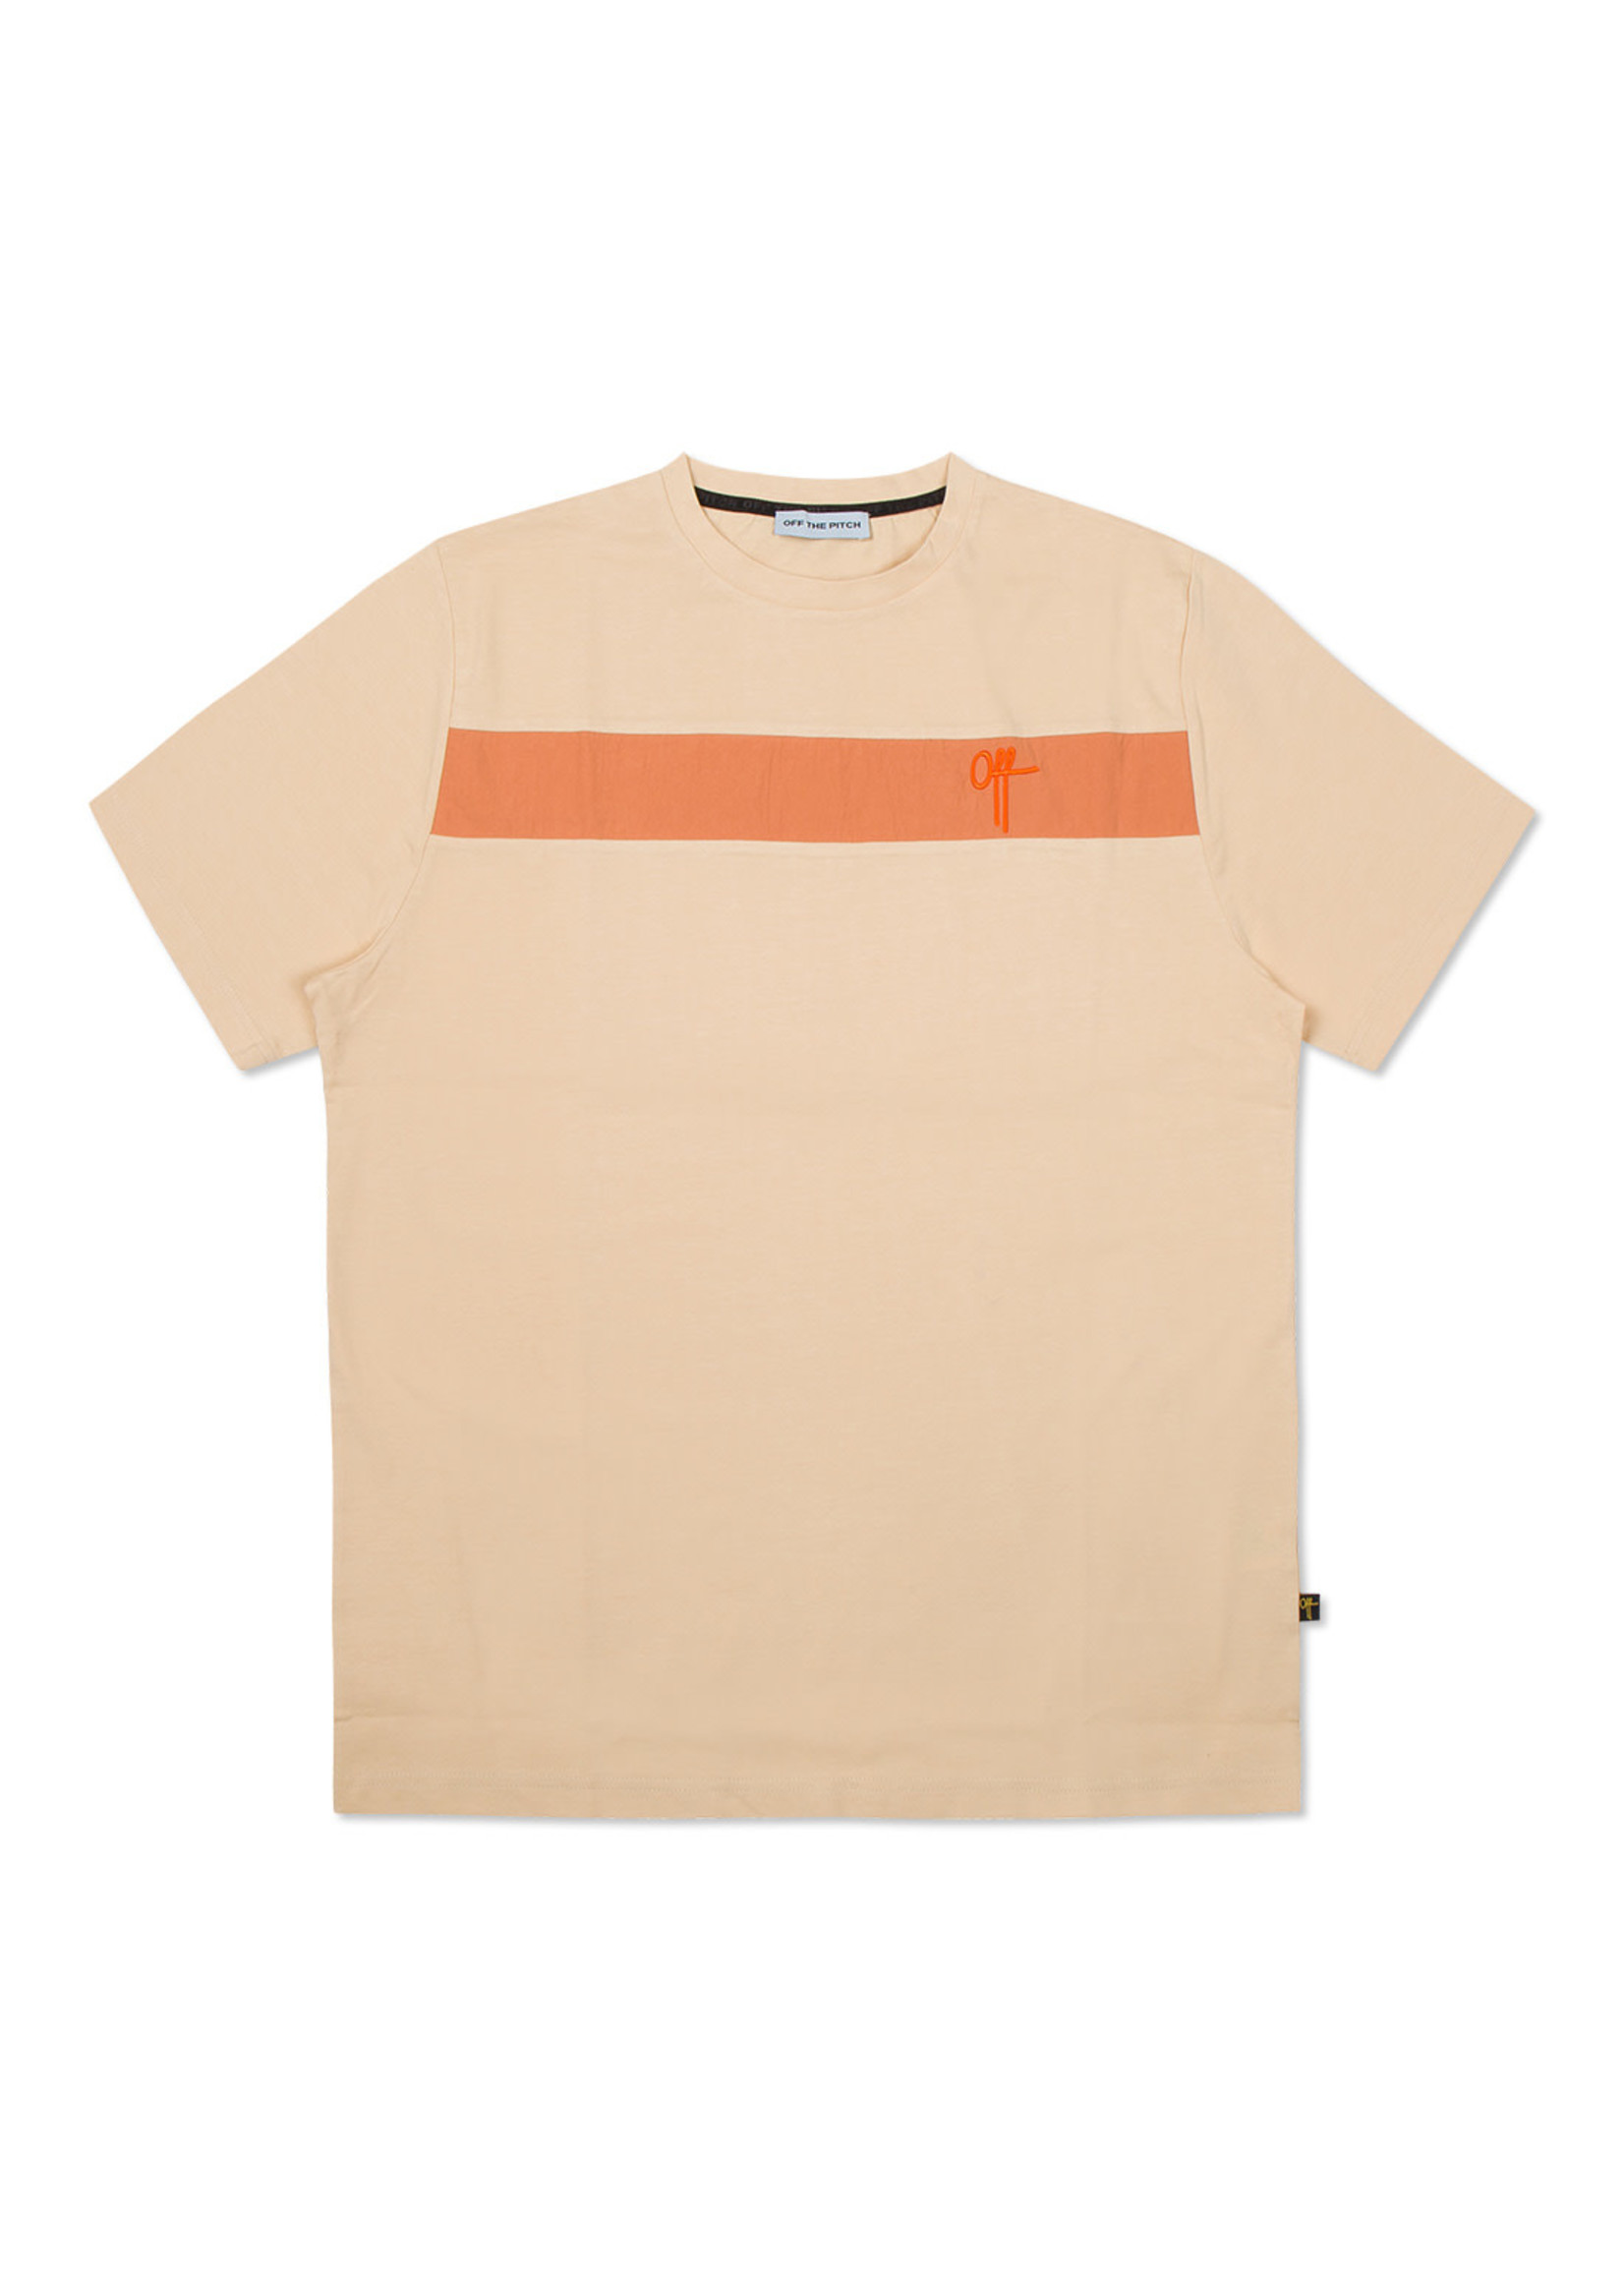 OFF THE PITCH The Comet Tee - Orange